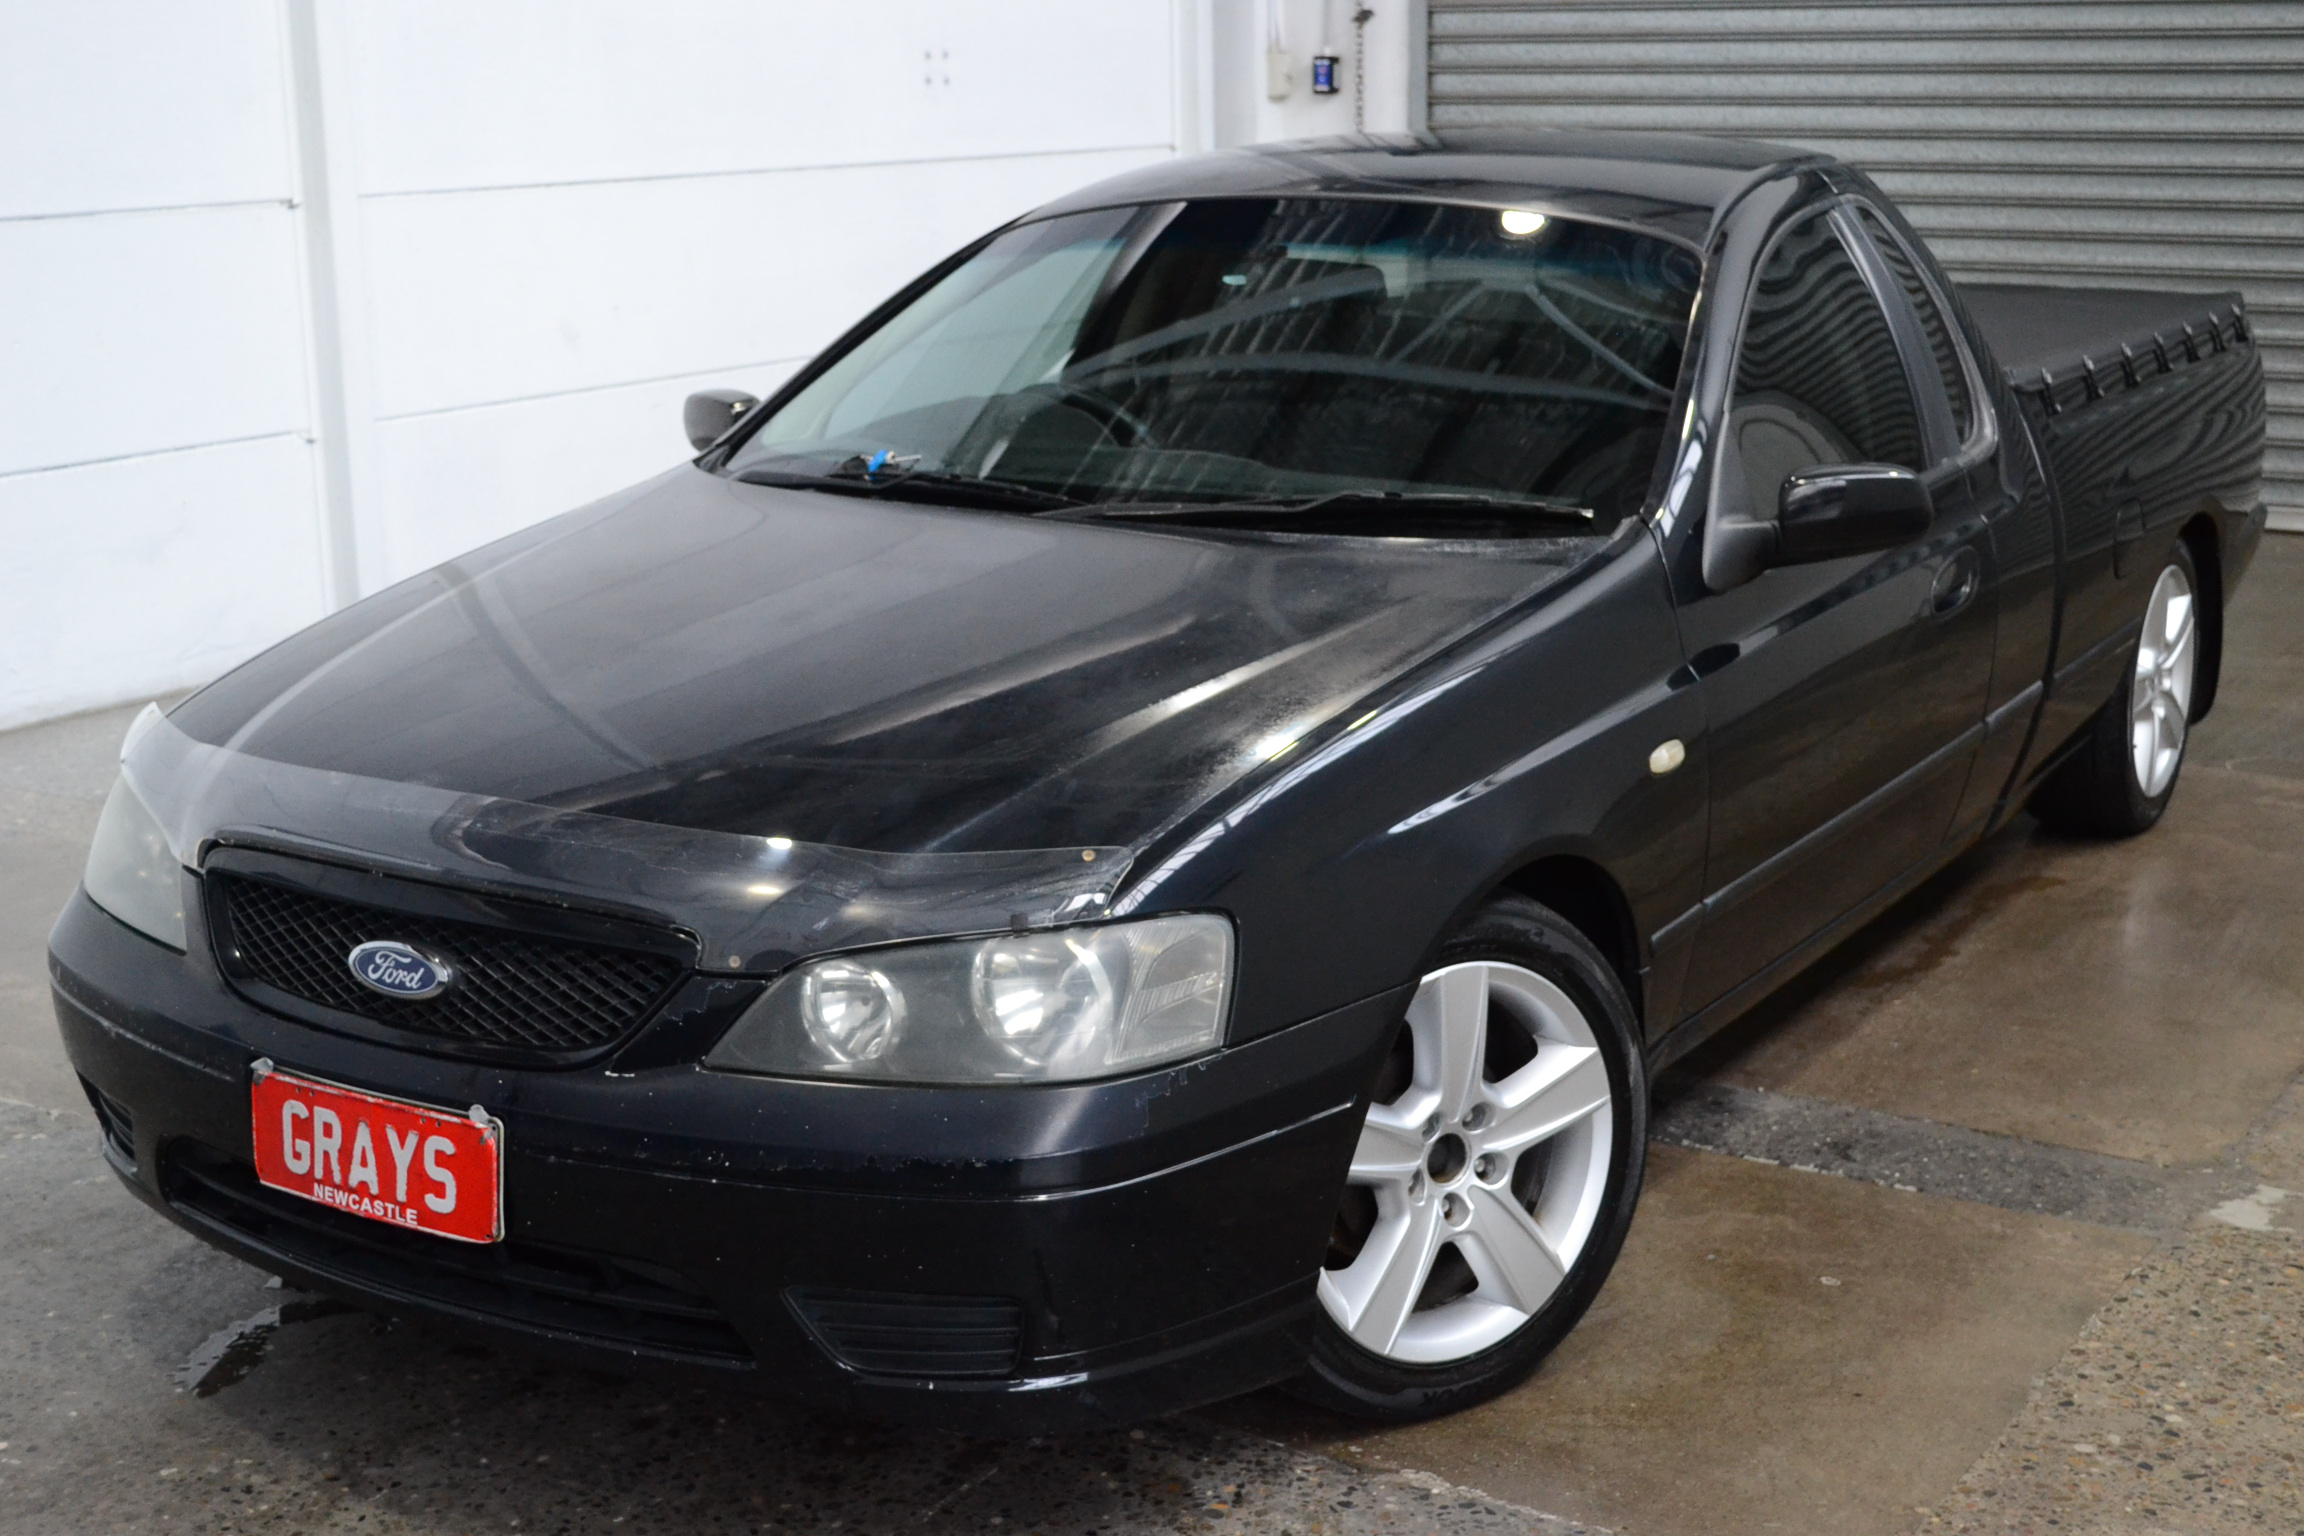 2004 Ford Falcon XL BA Automatic Ute 3 seater bench seat